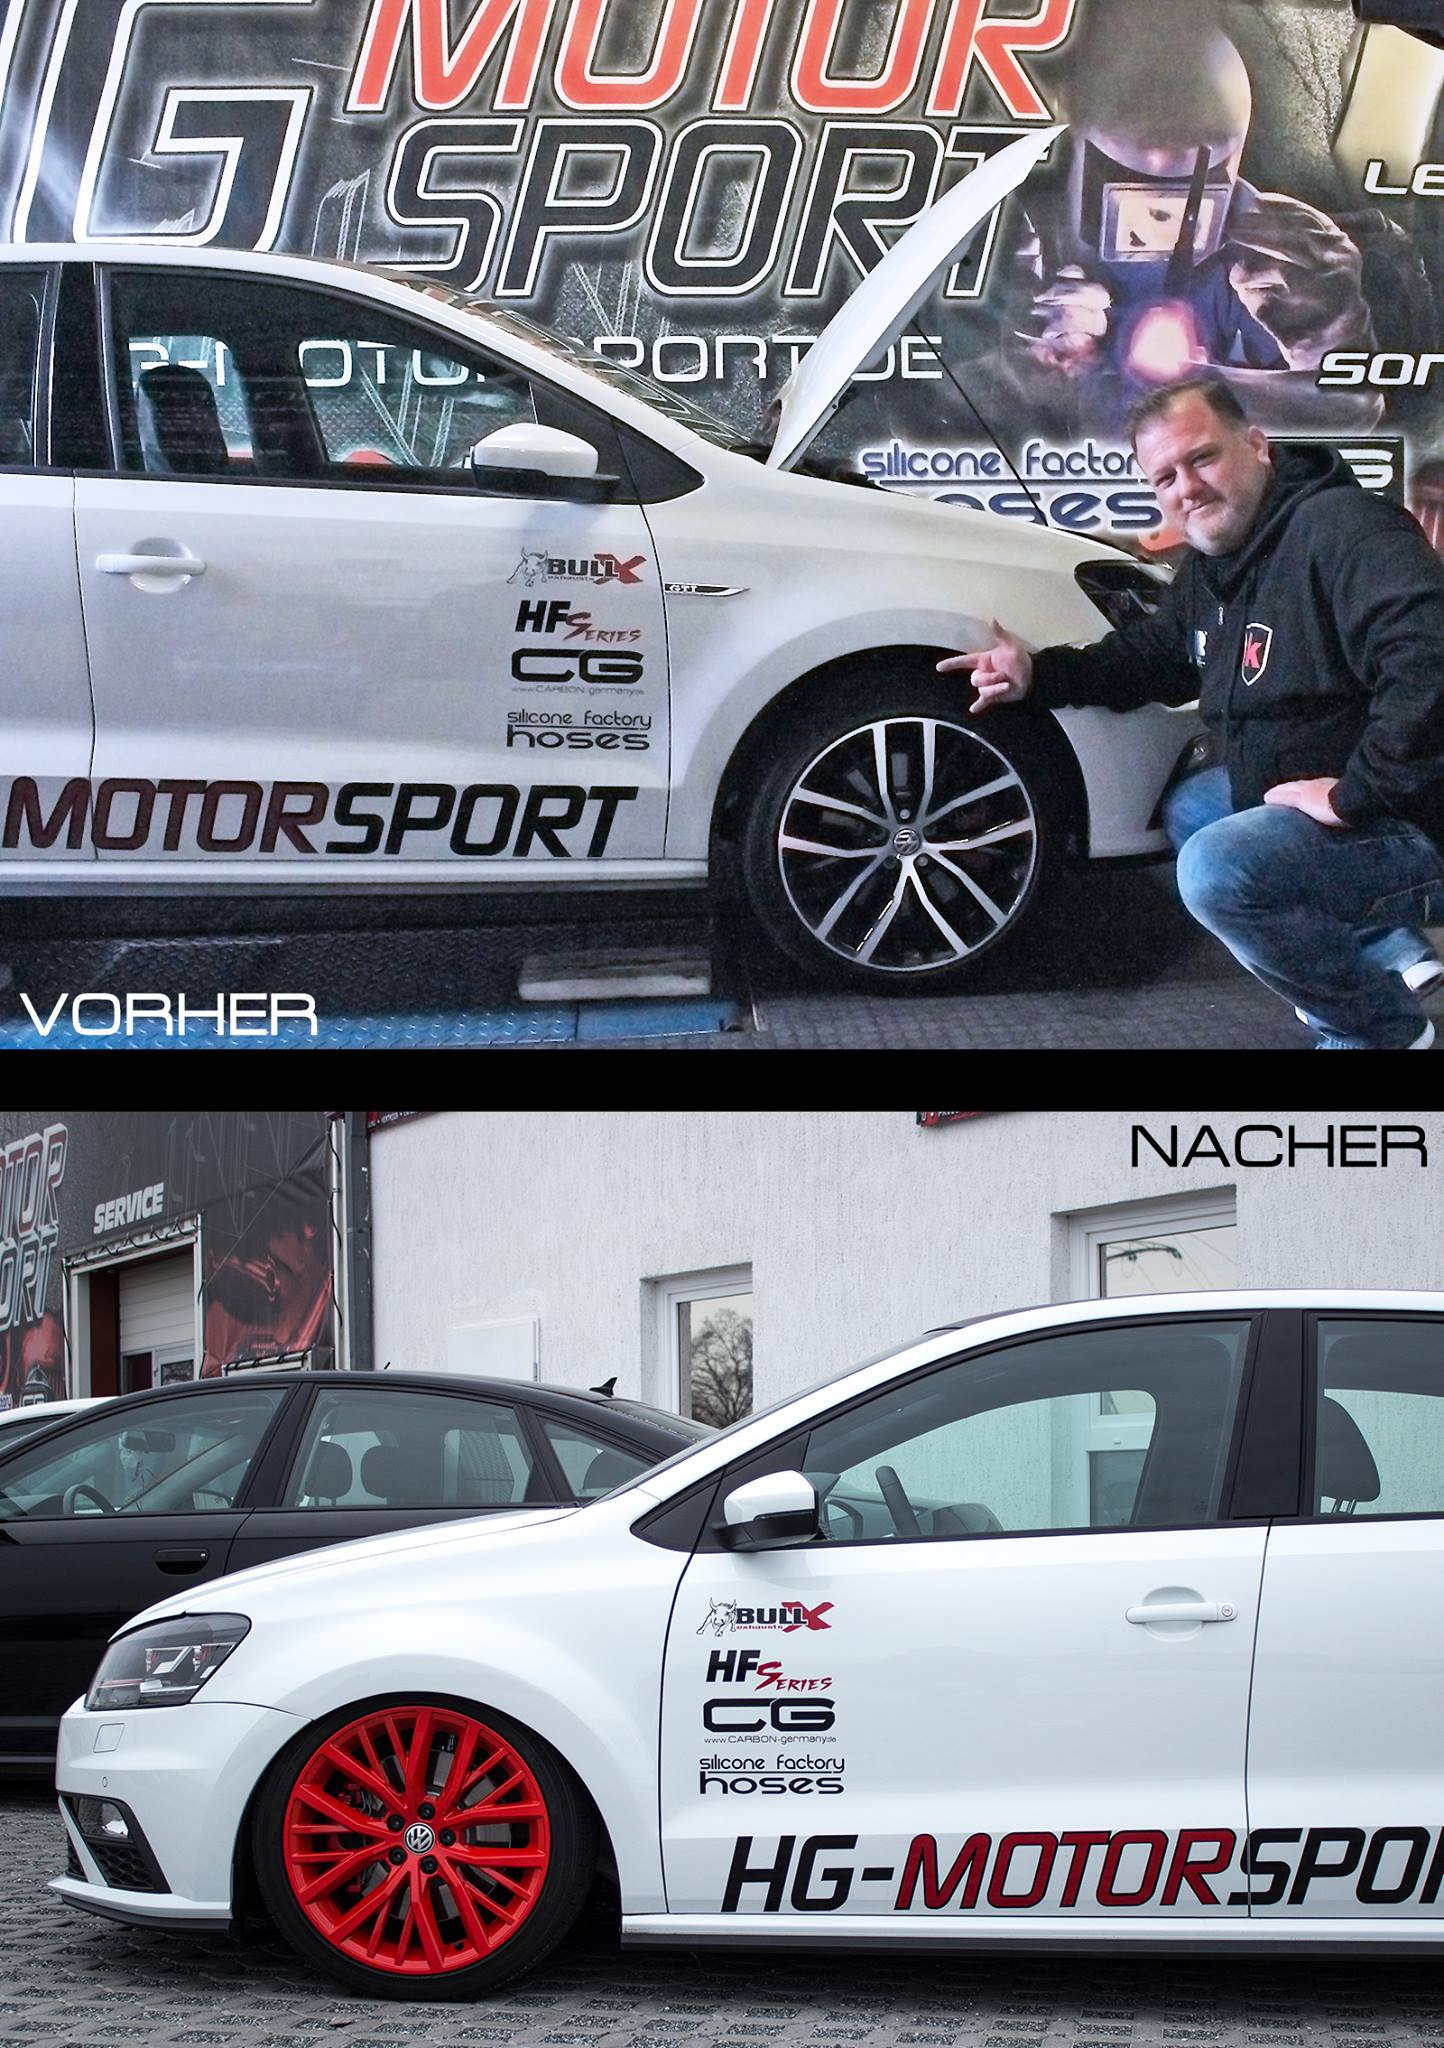 2015 Volkswagen Polo Gti Tuned To 260 Hp By Hg Motorsport